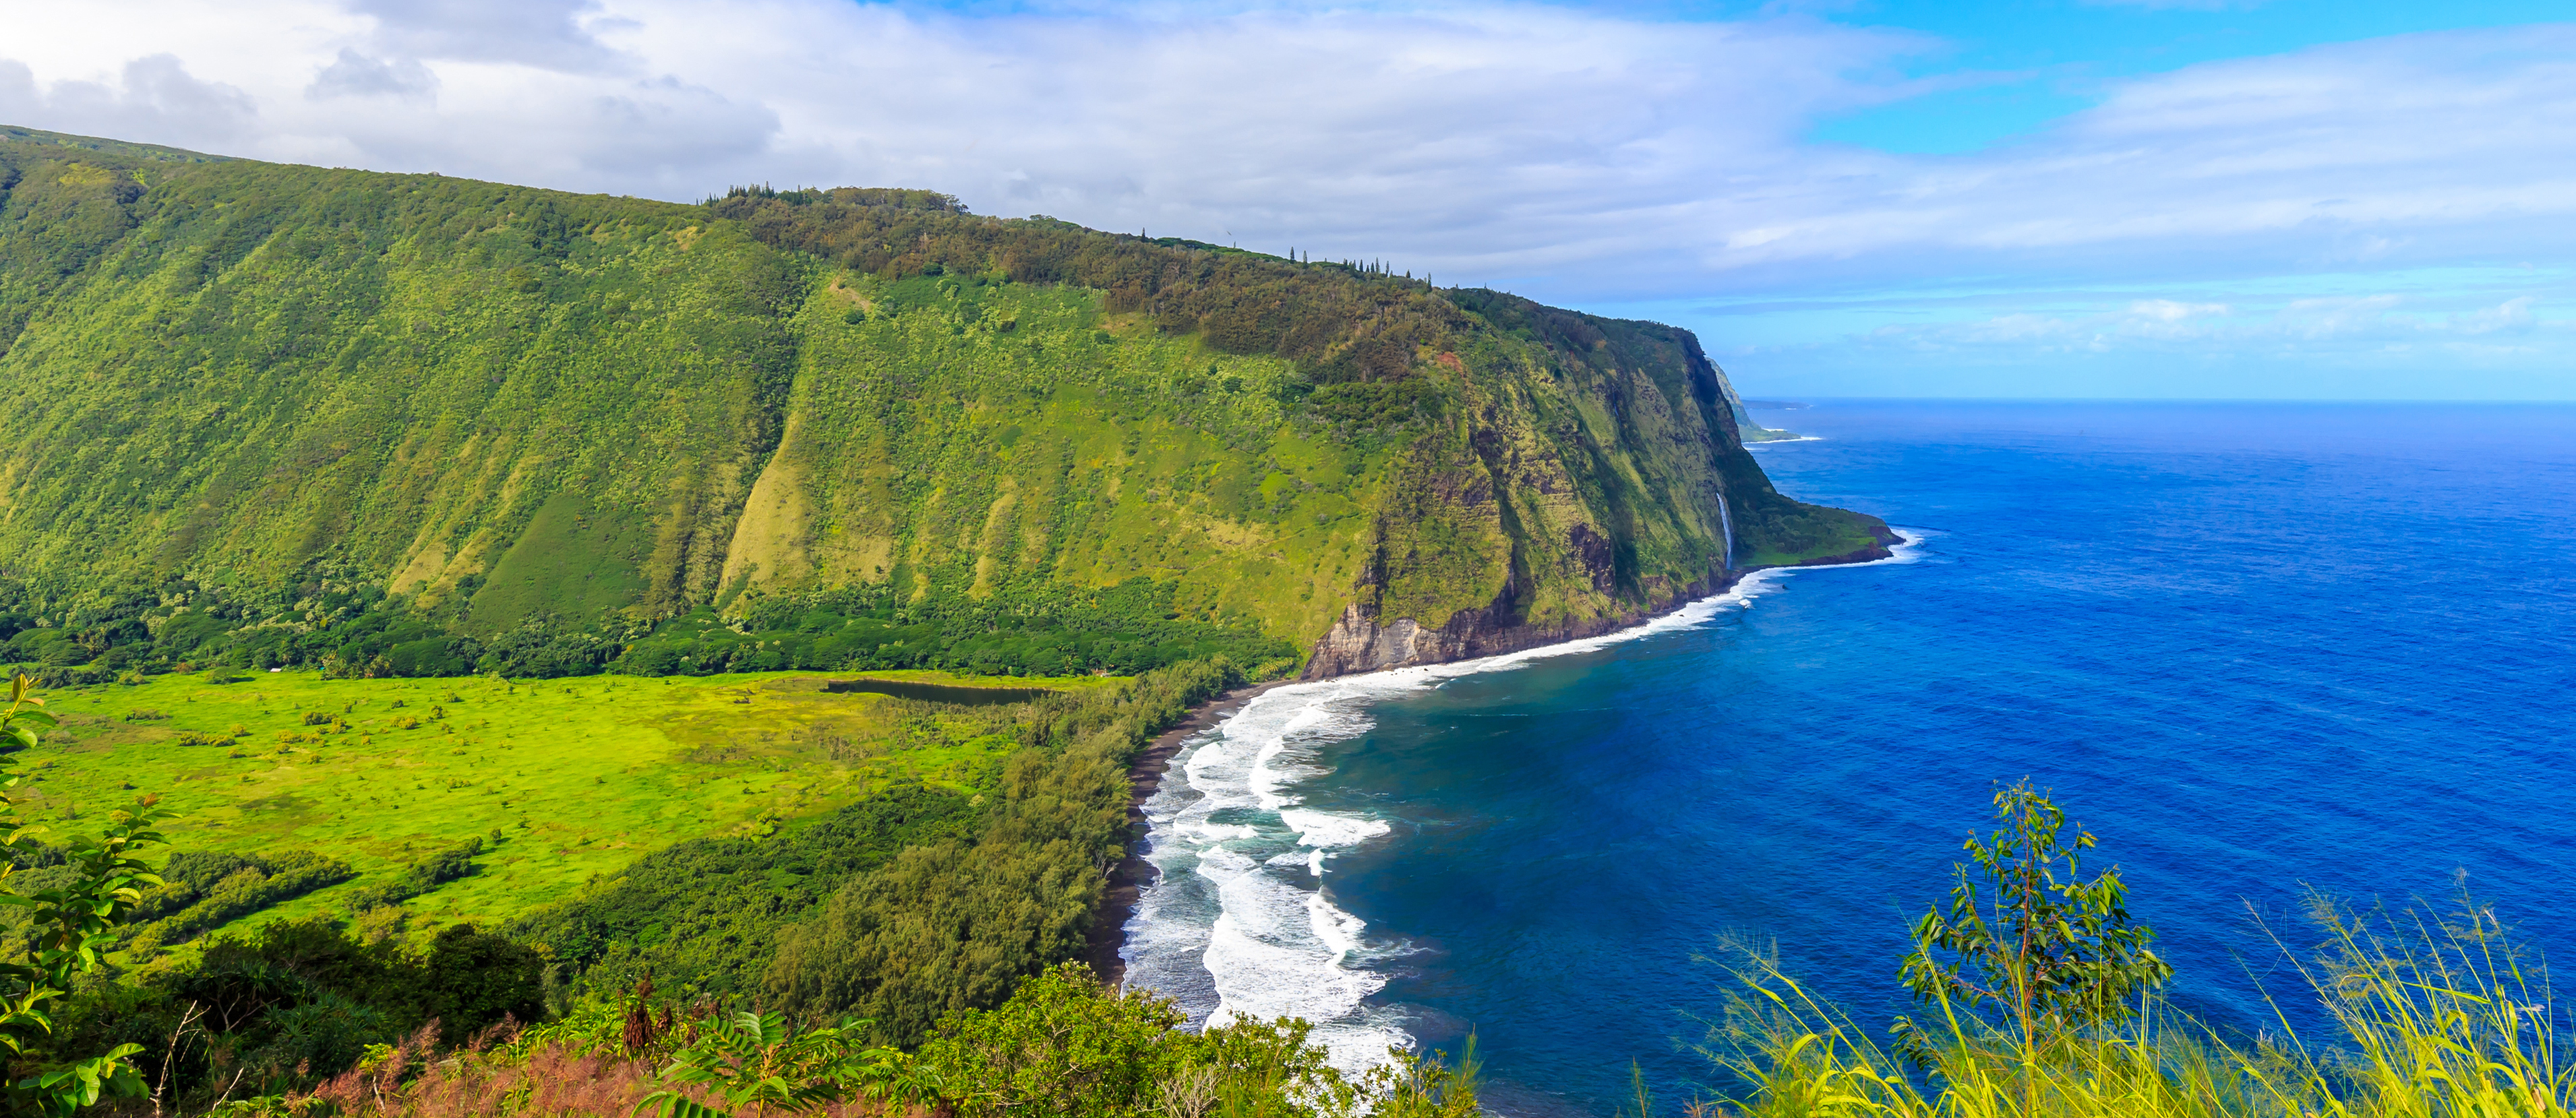 Waipio Valley Big Island Hawaii